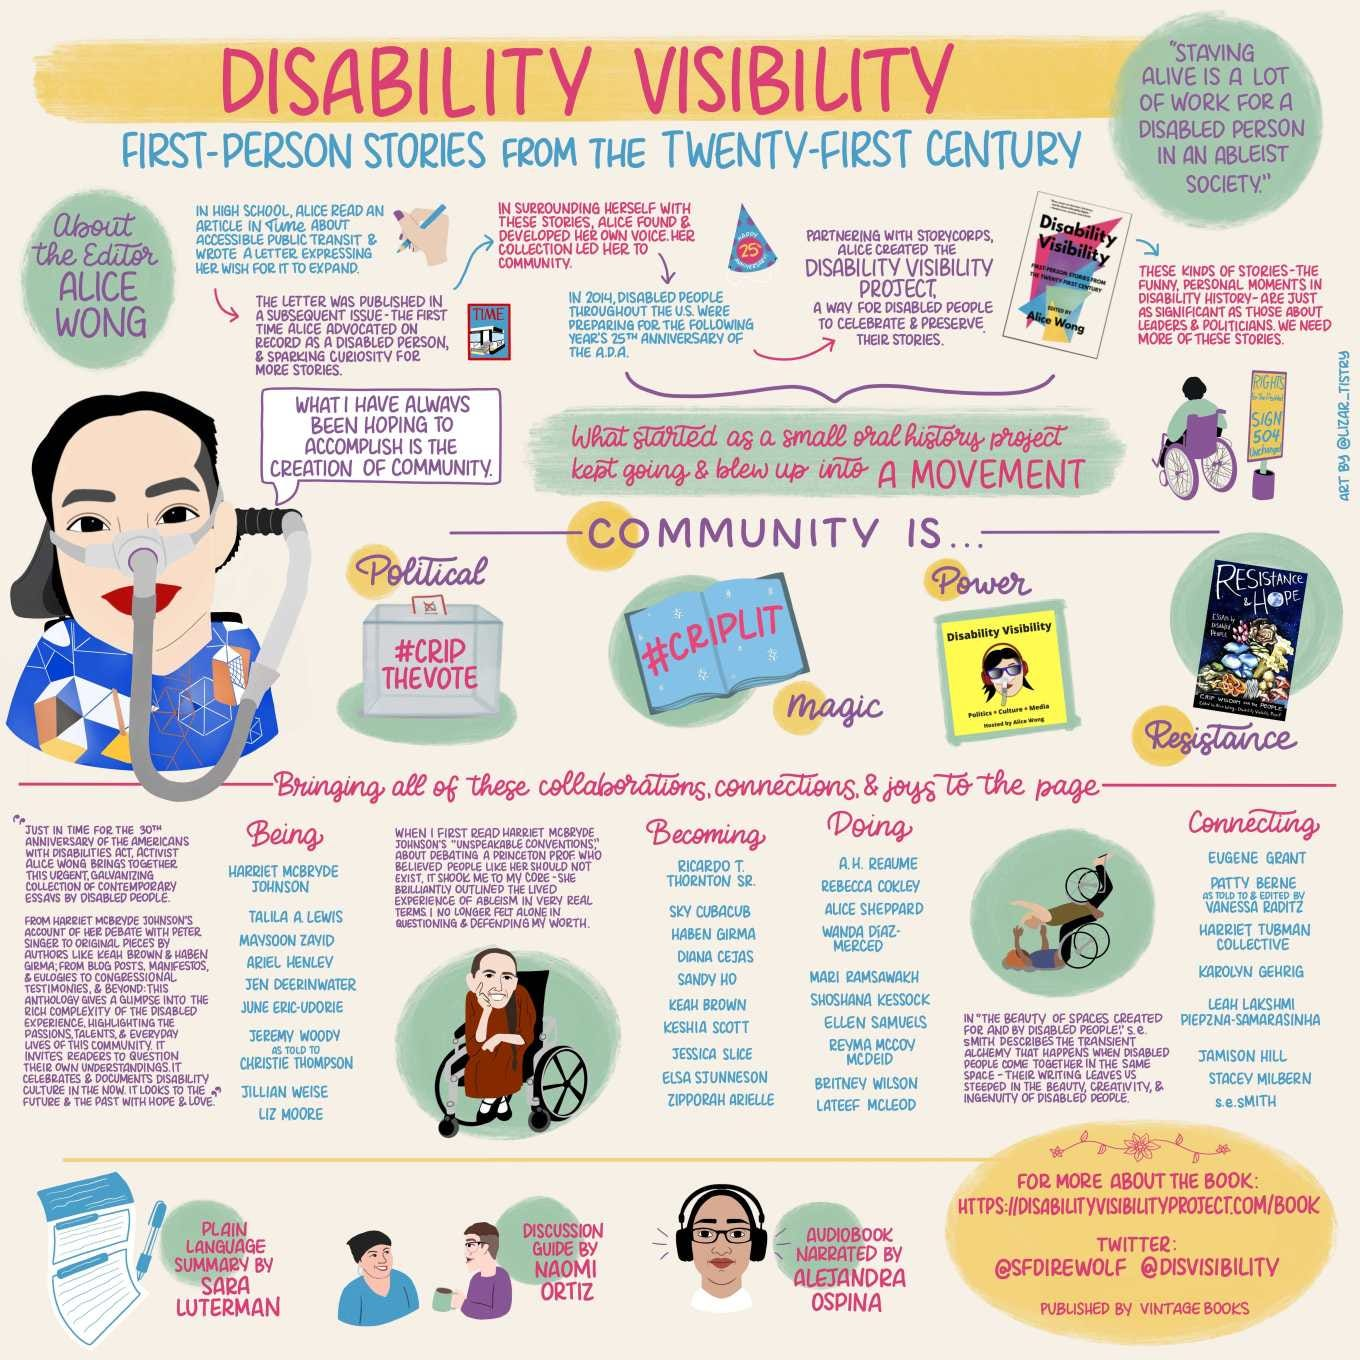 """Infographic titled """"Disability Visibility: First-Person Stories from the Twenty-First Century"""" with a yellow, pink, turquoise, pastel green, and pastel purple color scheme. A green circle next to the title reads """"Staying alive is a lot of work for a disabled person in an ableist society."""" Another green circle reads """"About the editor - Alice Wong"""" is above a doodle of Alice Wong, an Asian American women in a power chair and a blue shirt with an organize, black, white and yellow geometric pattern, wearing a mask over her nose attached to a gray tube and bright red lip color; and a speech bubble reads """"What I have always been opening to accomplish is the creation of community."""" Text reads """"In high school, Alice read an article in Time about accessible public transit and wrote a letter expressing her wish for it to expand"""" with a doodle of a hand with a blue pencil and purple nails."""" An arrow points to text reading """"The letter was published in a subsequent issue - the first time Alice advocated on record as a disabled person, and sparking curiosity for more stories"""" with a doodle of a Time Magazine cover with a bus with a wheelchair ramp. Another arrow points to text reading """"In surrounding herself with these stories, Alice found and developed her own voice. Her collection led her to community"""" and another arrow points to text reading """"In 2014, disabled people through the U.S. were preparing for the following year's 25th anniversary for the A.D.A"""" and a doodle of a party hat that reads """"Happy 25th Anniversary."""" Another arrow points to """"Partnering with Storycorps, Alice created the Disability Visibility Project, a way for disabled people to celebrate and preserve their stories"""" with an image of the cover the """"Disability Visibility"""" book. Another arrow points to """"These kinds of stores - the funny, personal moments in disability history - are just as significant as those about leaders and politicians. We need more of these stories."""" A curly bracket points to text reading """""""